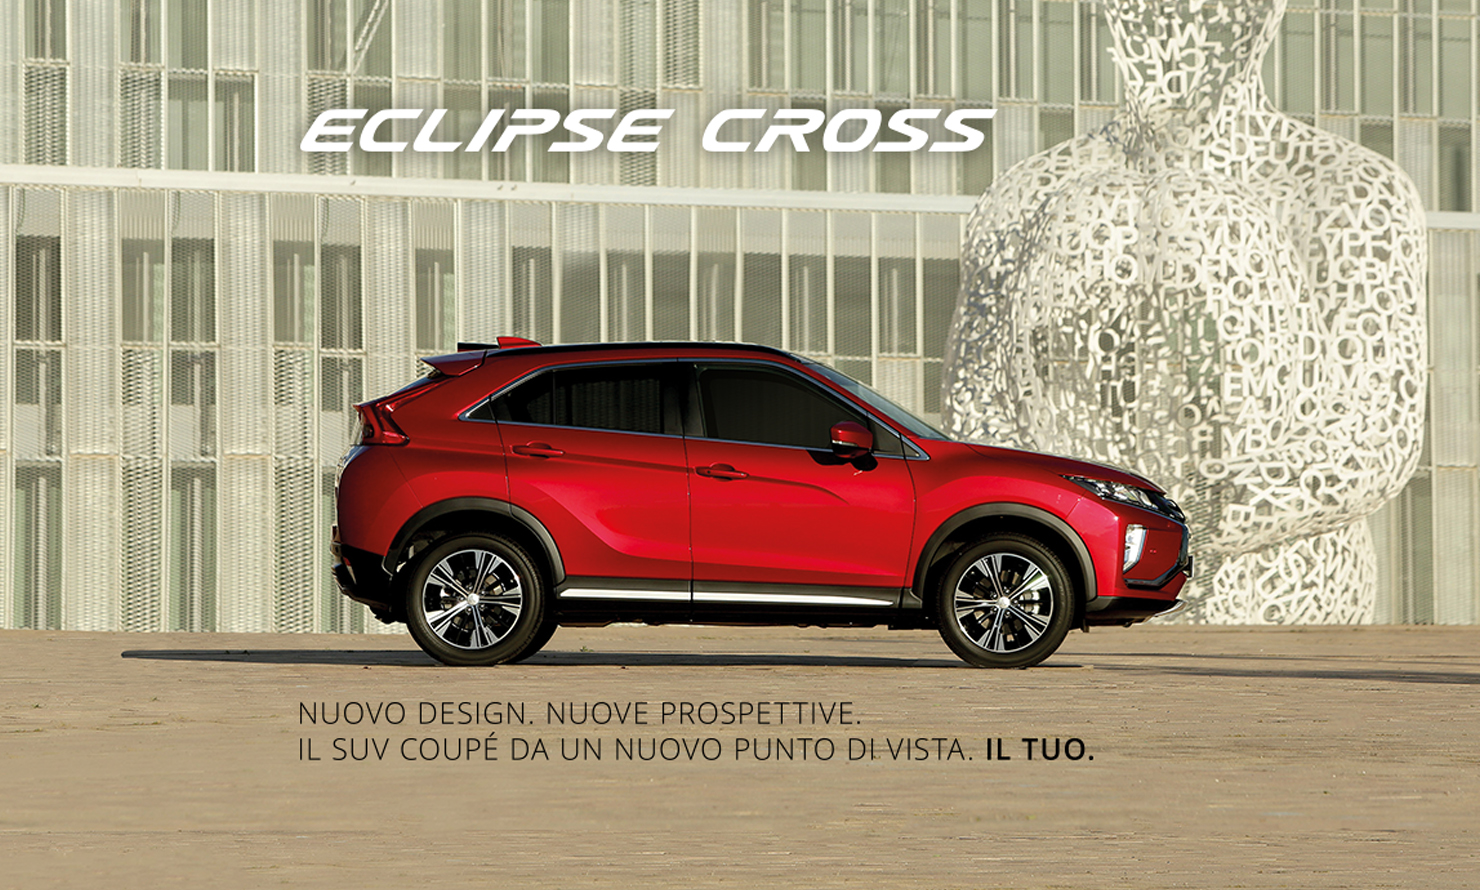 https://www.kubelibre.com/uploads/Slider-work-tutti-clienti/mitsubishi-eclipse-cross-design-week-1.jpg